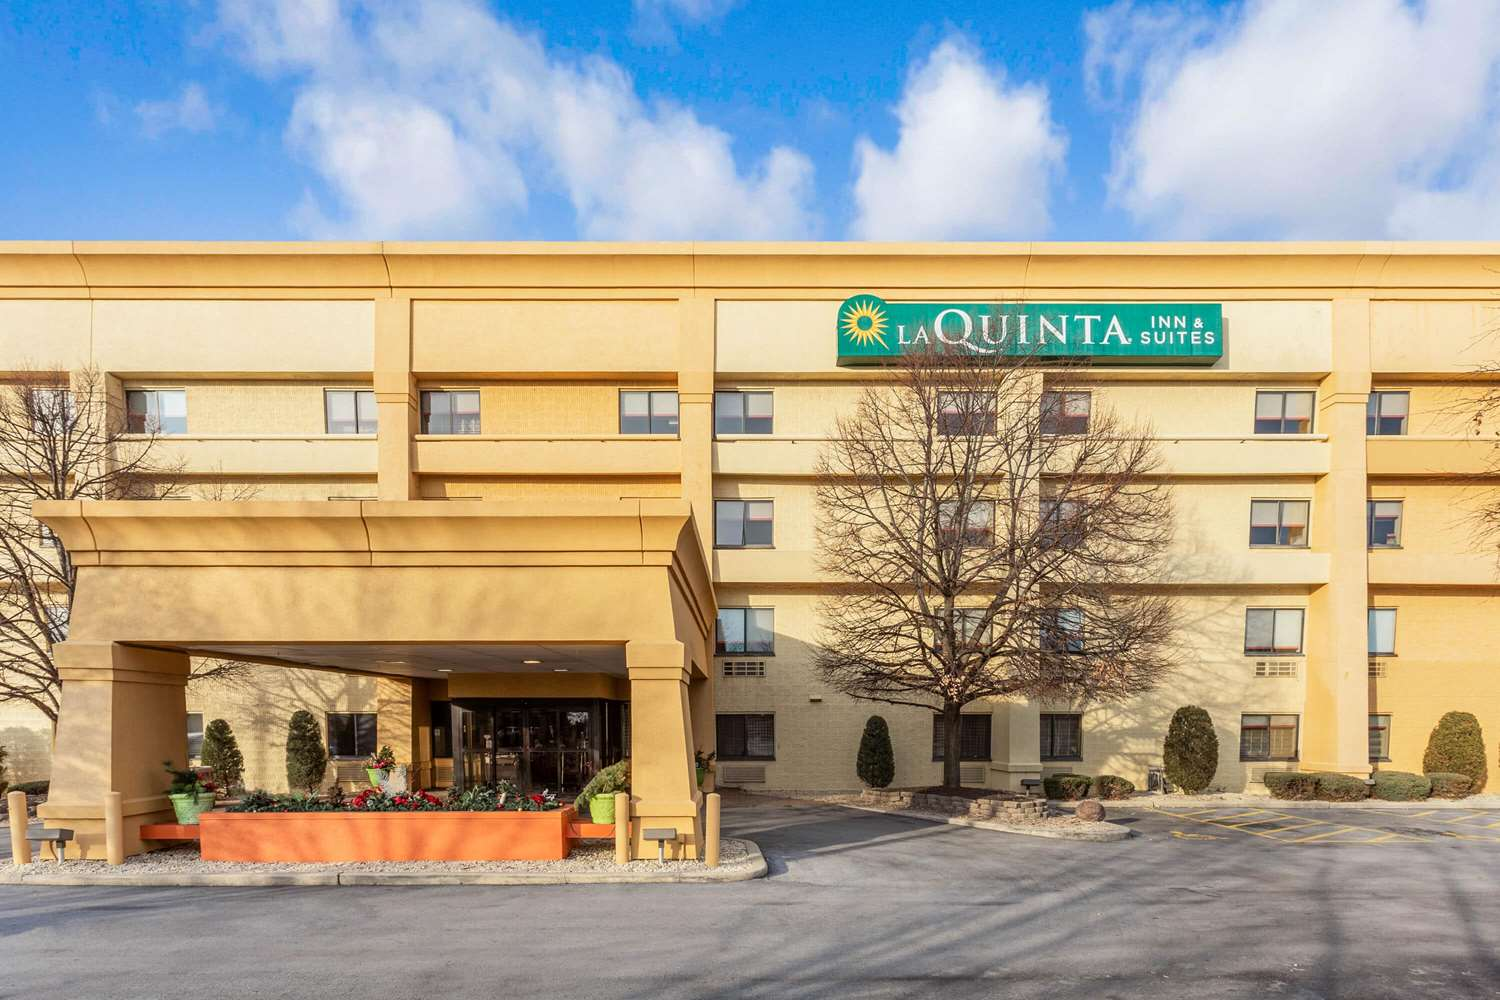 La Quinta Inn Tinley Park